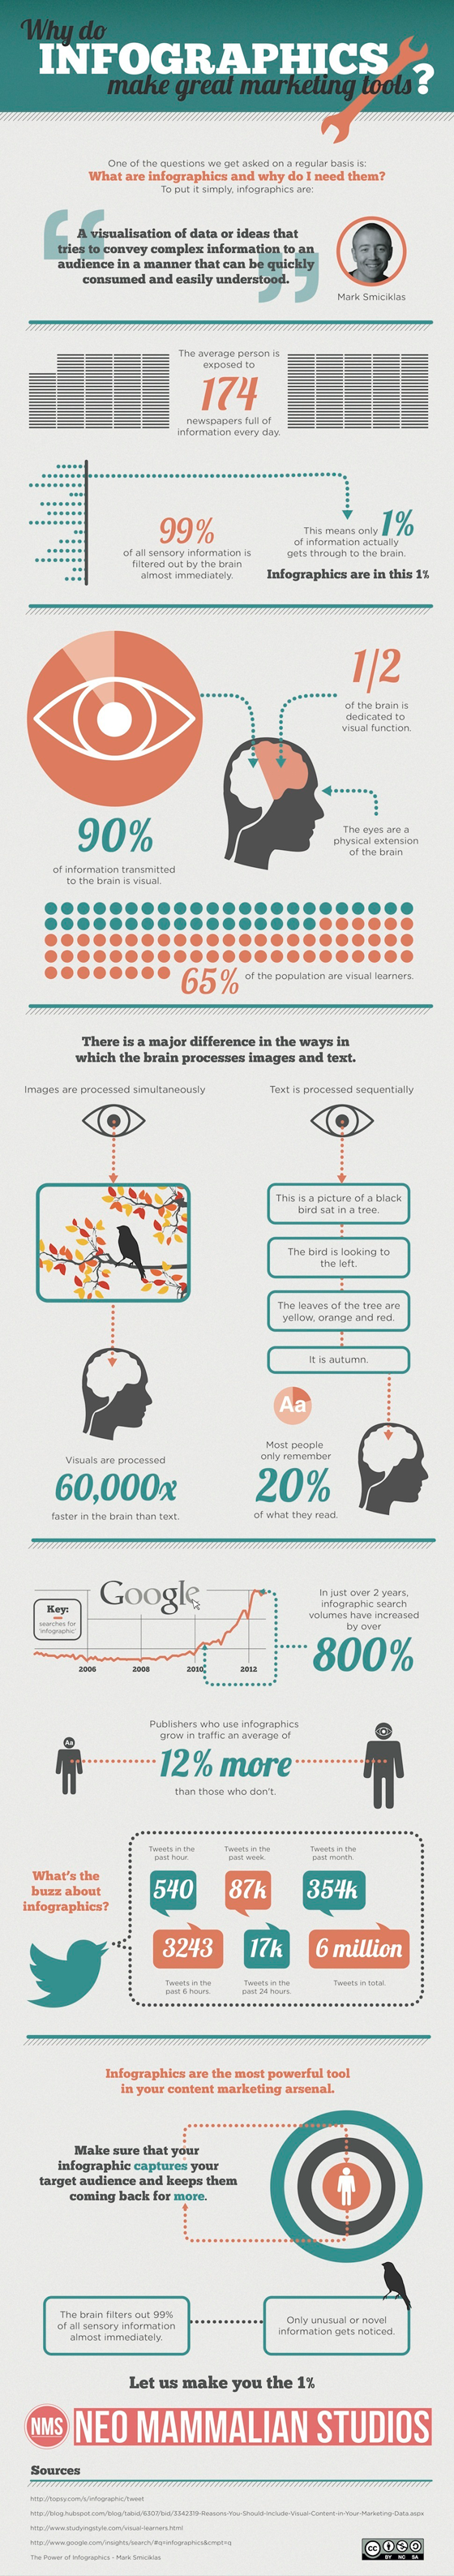 Infographics have seen an increase of 800% in search volumes over the last two years. Read on to see why they really work when it comes to marketing YOUR business.